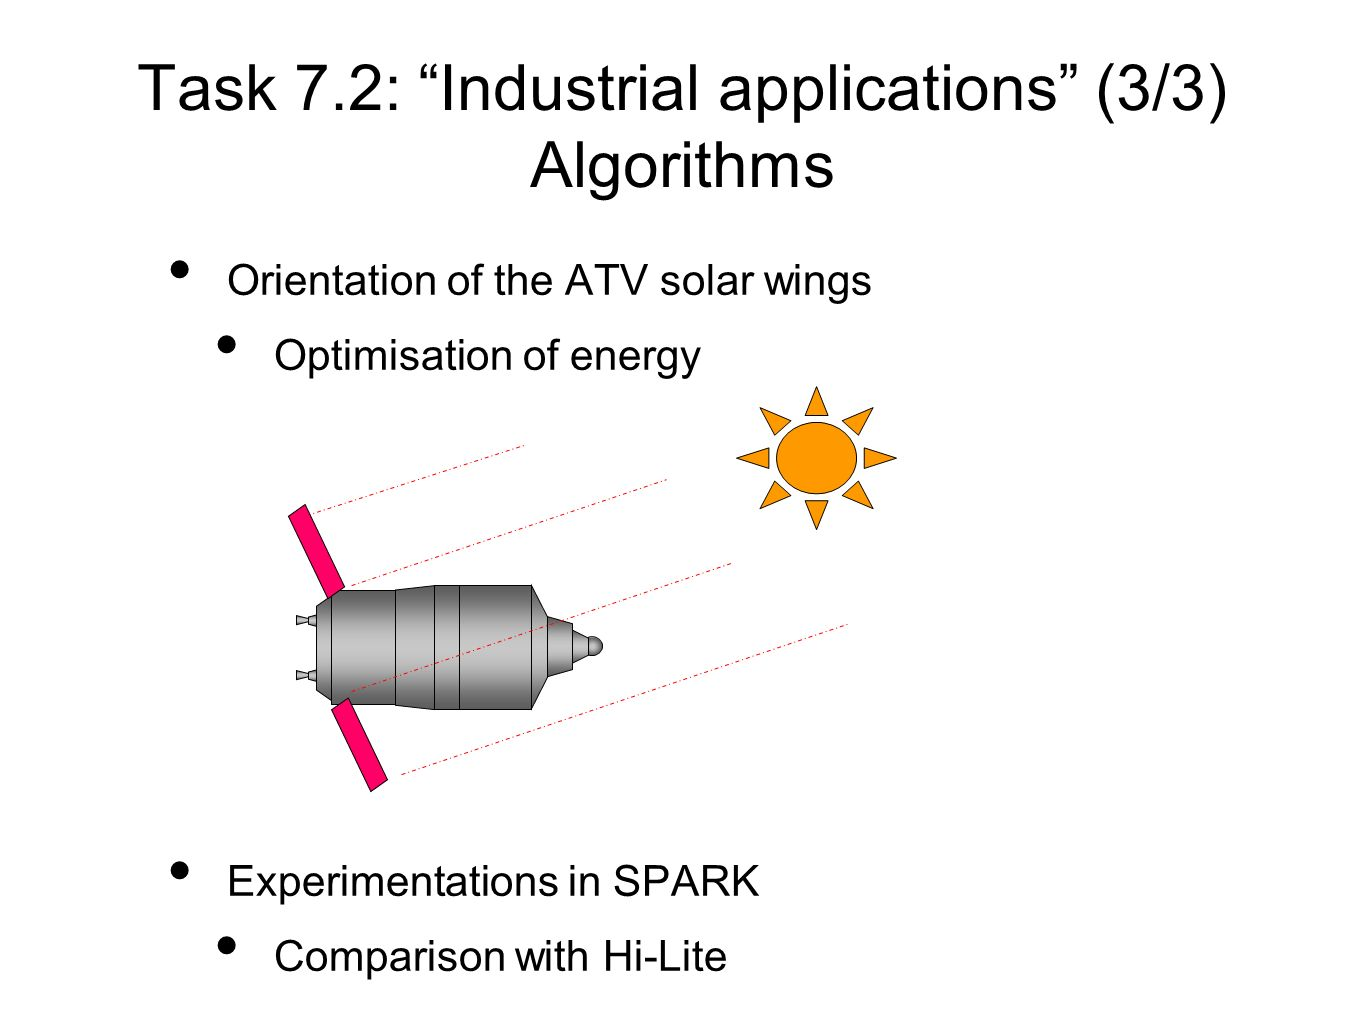 Task 7.2: Industrial applications (3/3) Algorithms